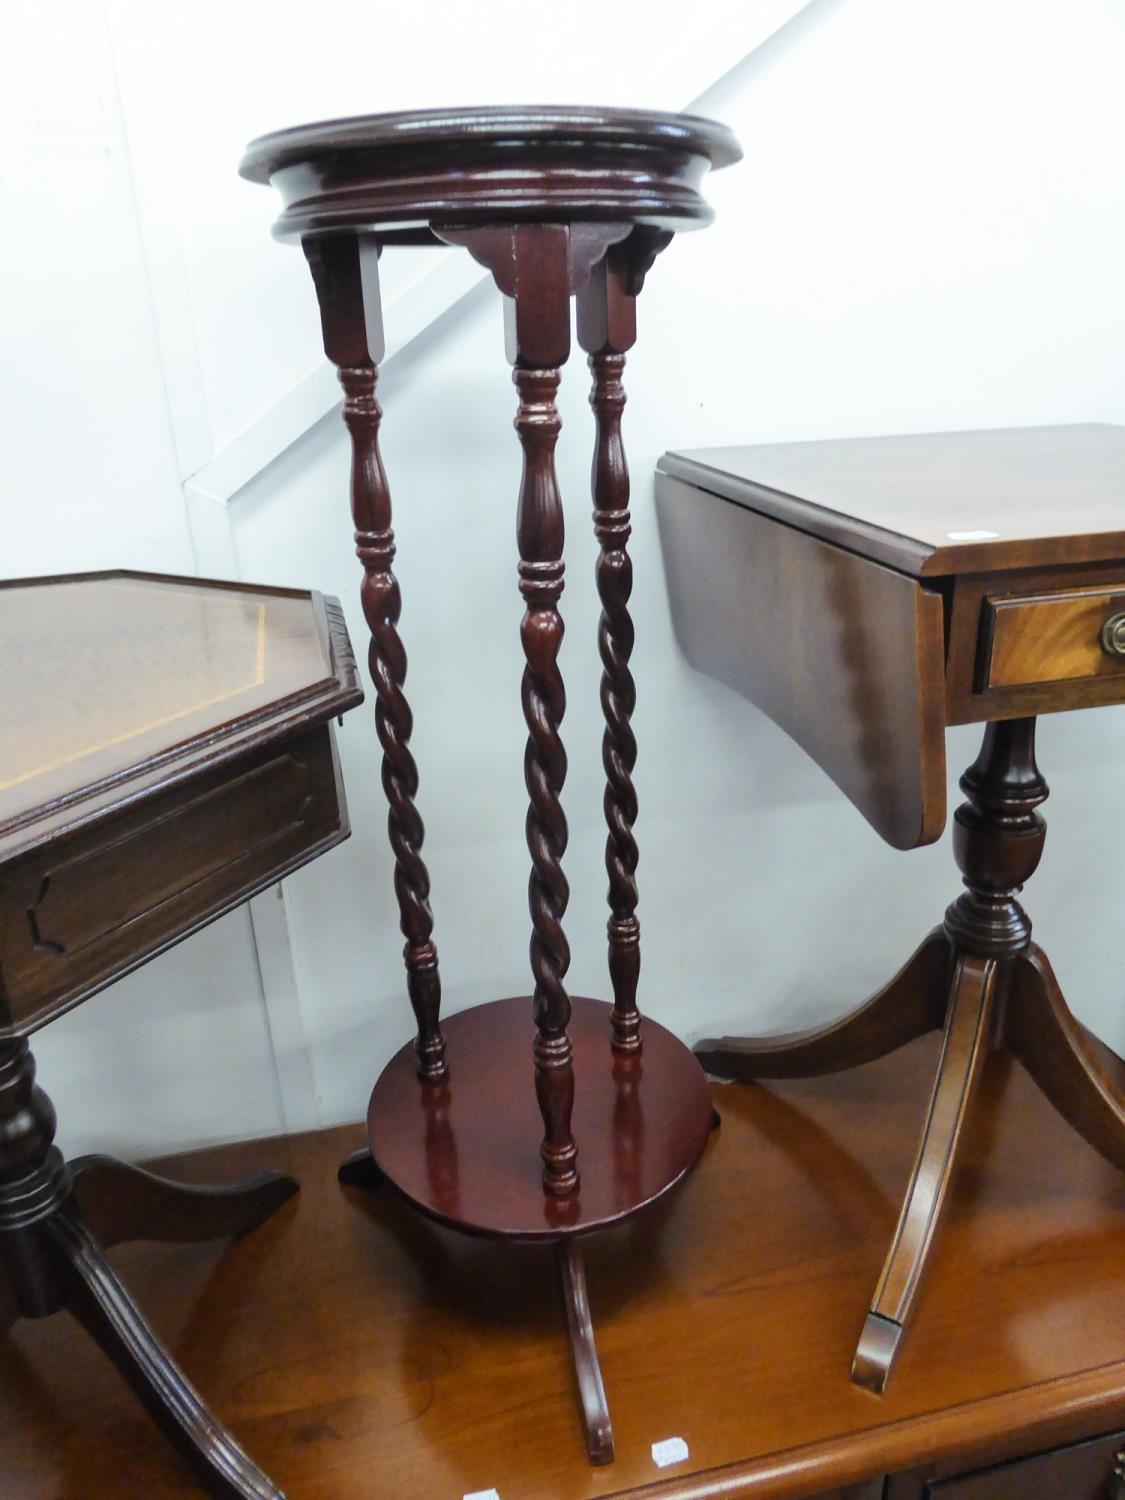 Lot 284 - A MAHOGANY TWO TIER CIRCULAR JARDINIERE STAND WITH THREE SPIRALLY TWISTED COLUMNS AND TRIPOD FEET